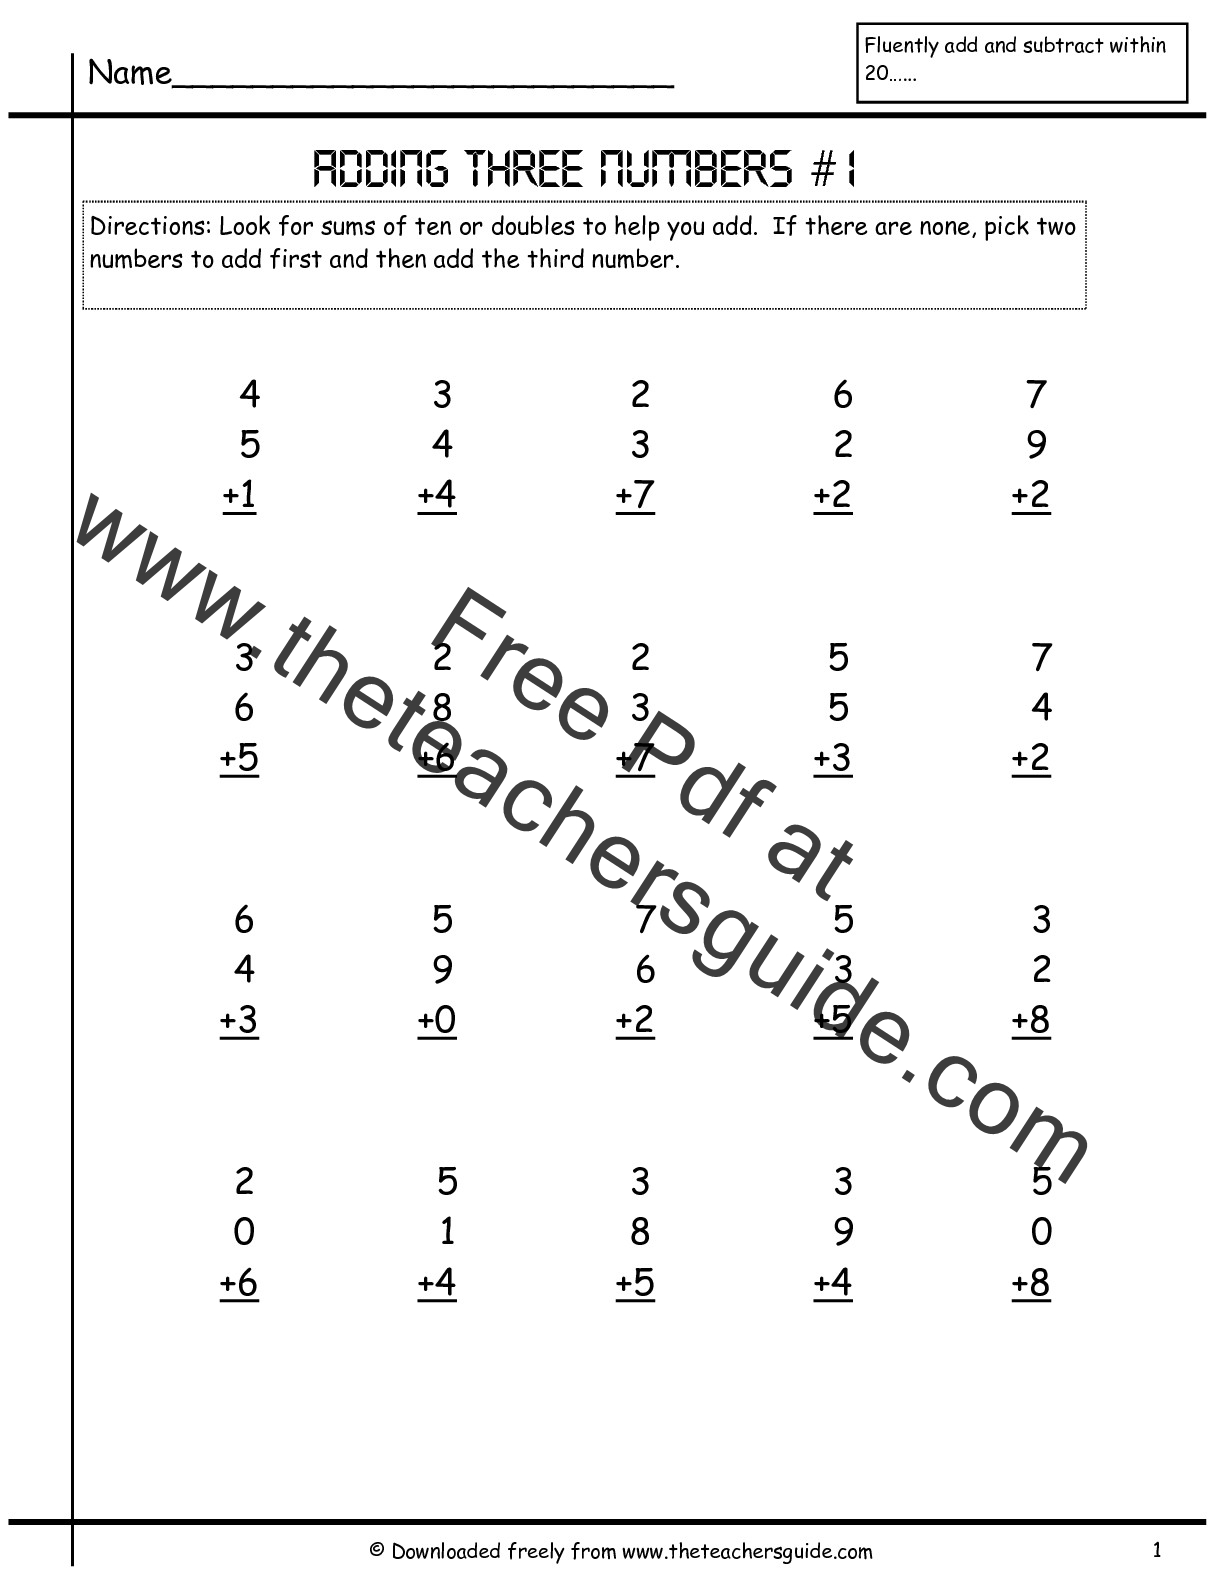 Free Math Printouts from The Teachers Guide – Free 3 Digit Addition and Subtraction Worksheets